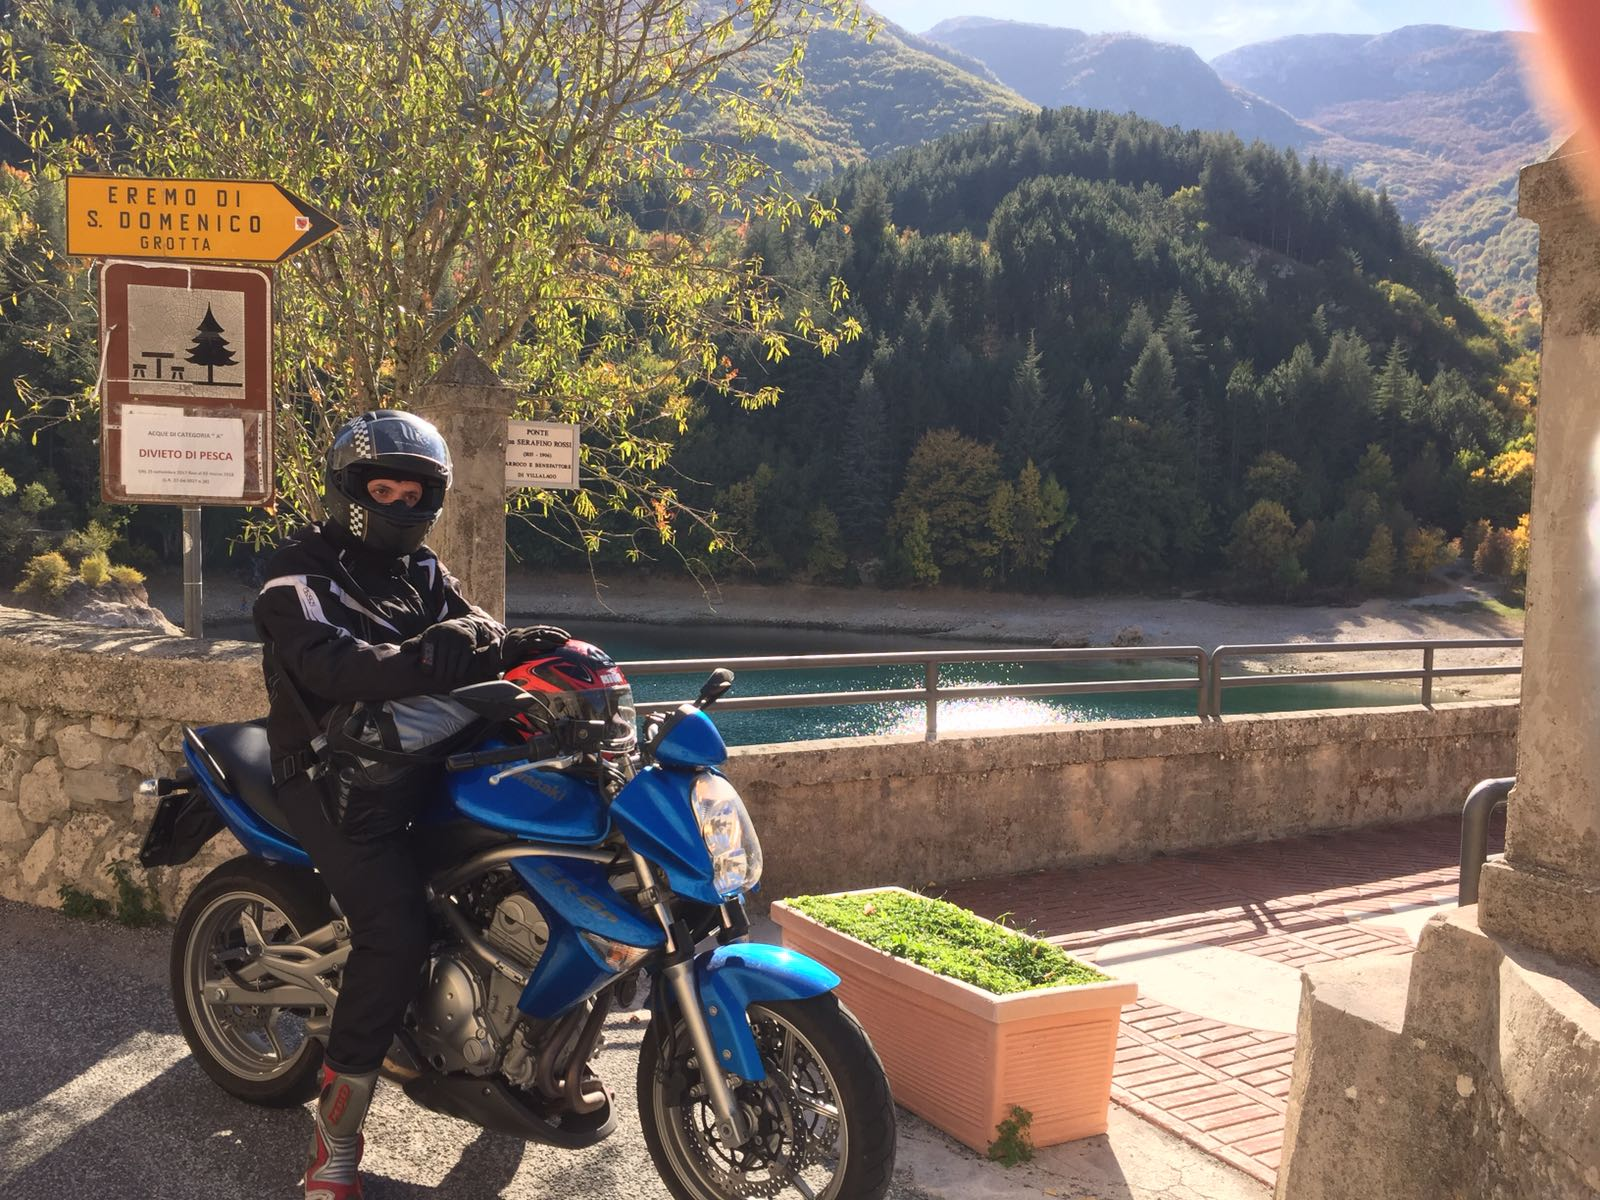 tour-in-moto-eremo-san-domenico